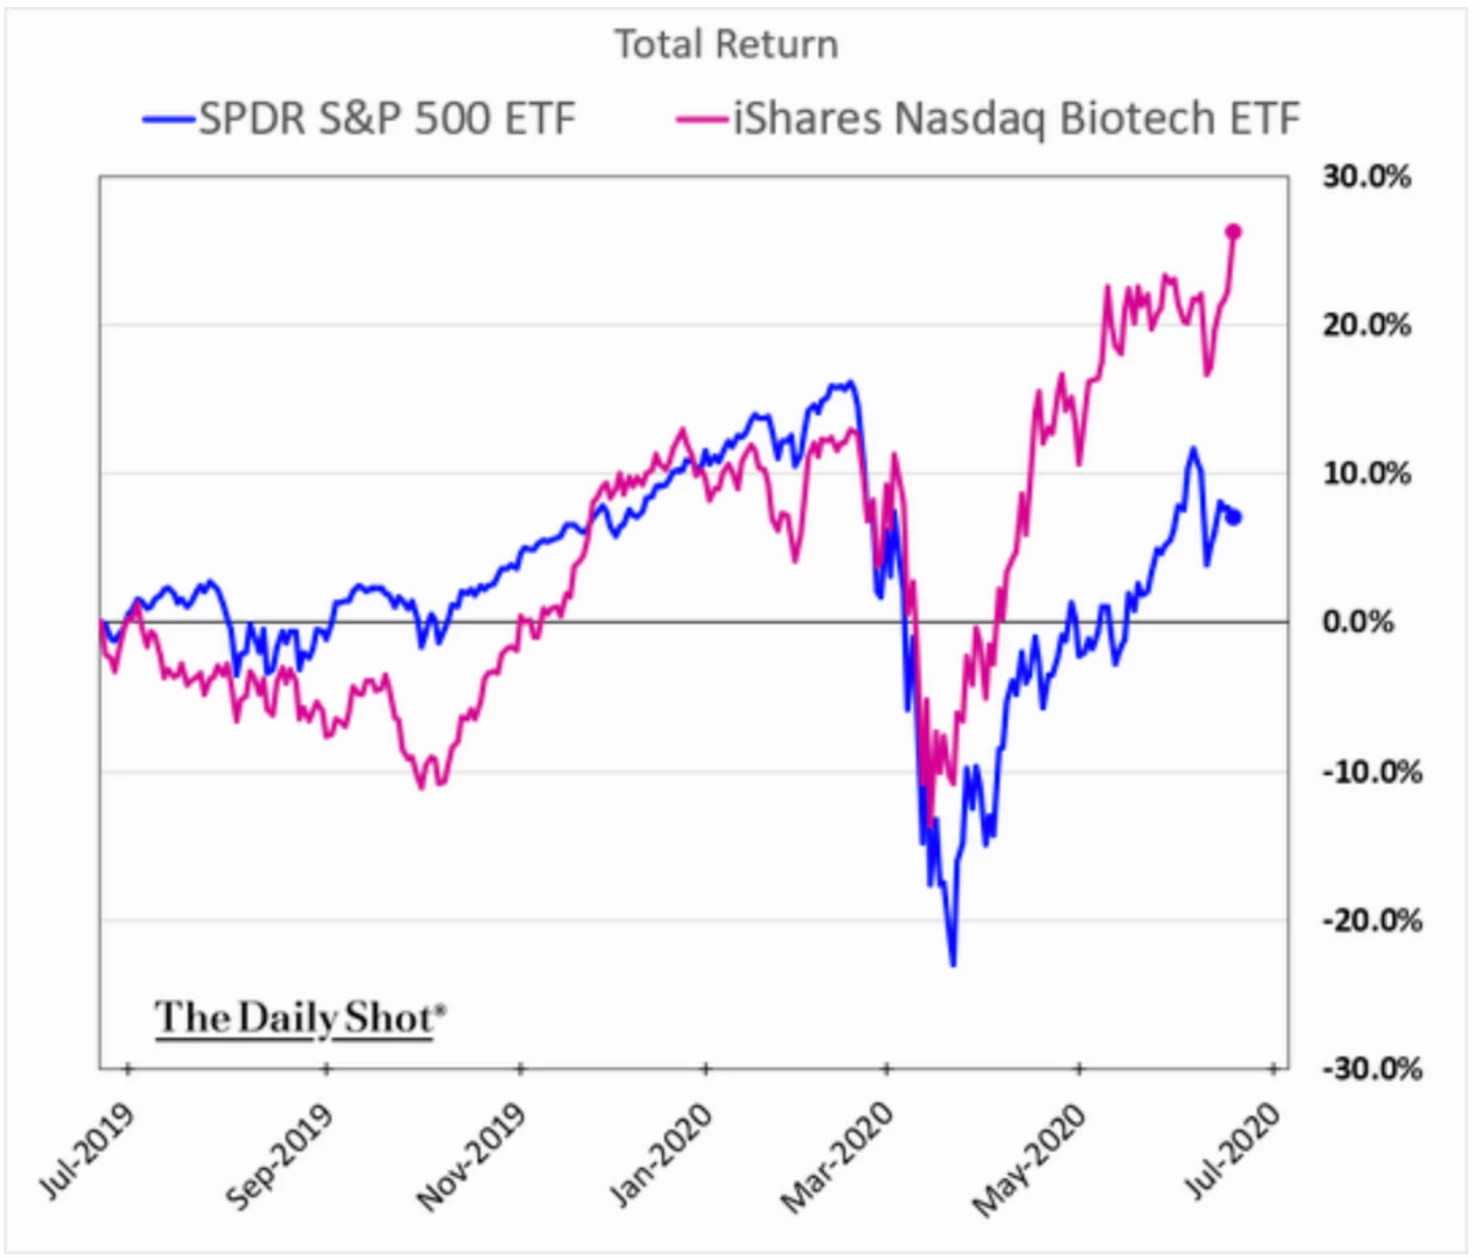 Biotech shares have substantially outperformed the market this year